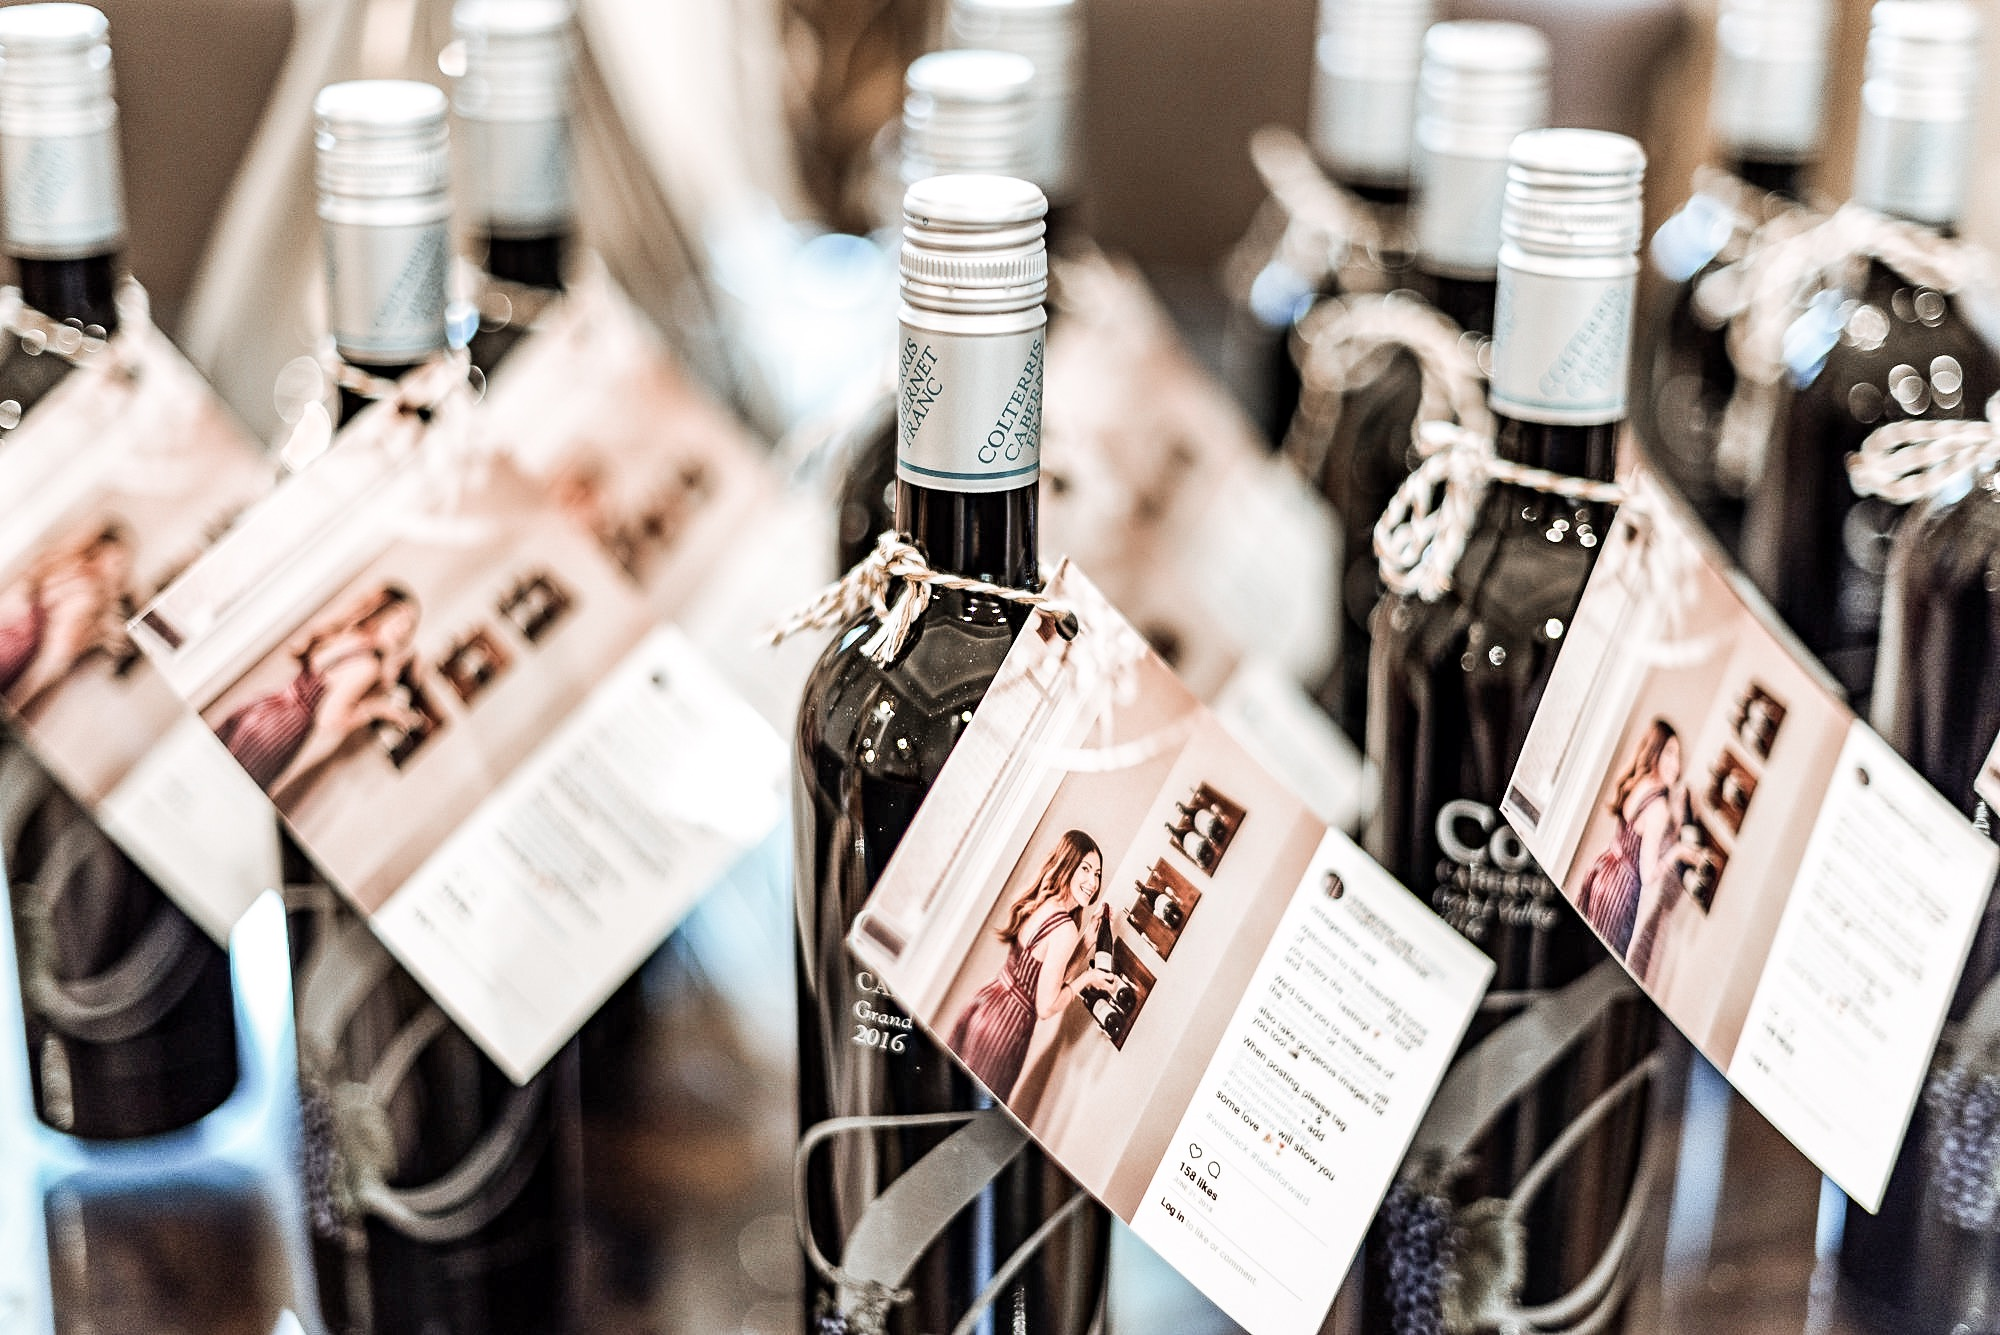 Colterris Wines, based here in CO